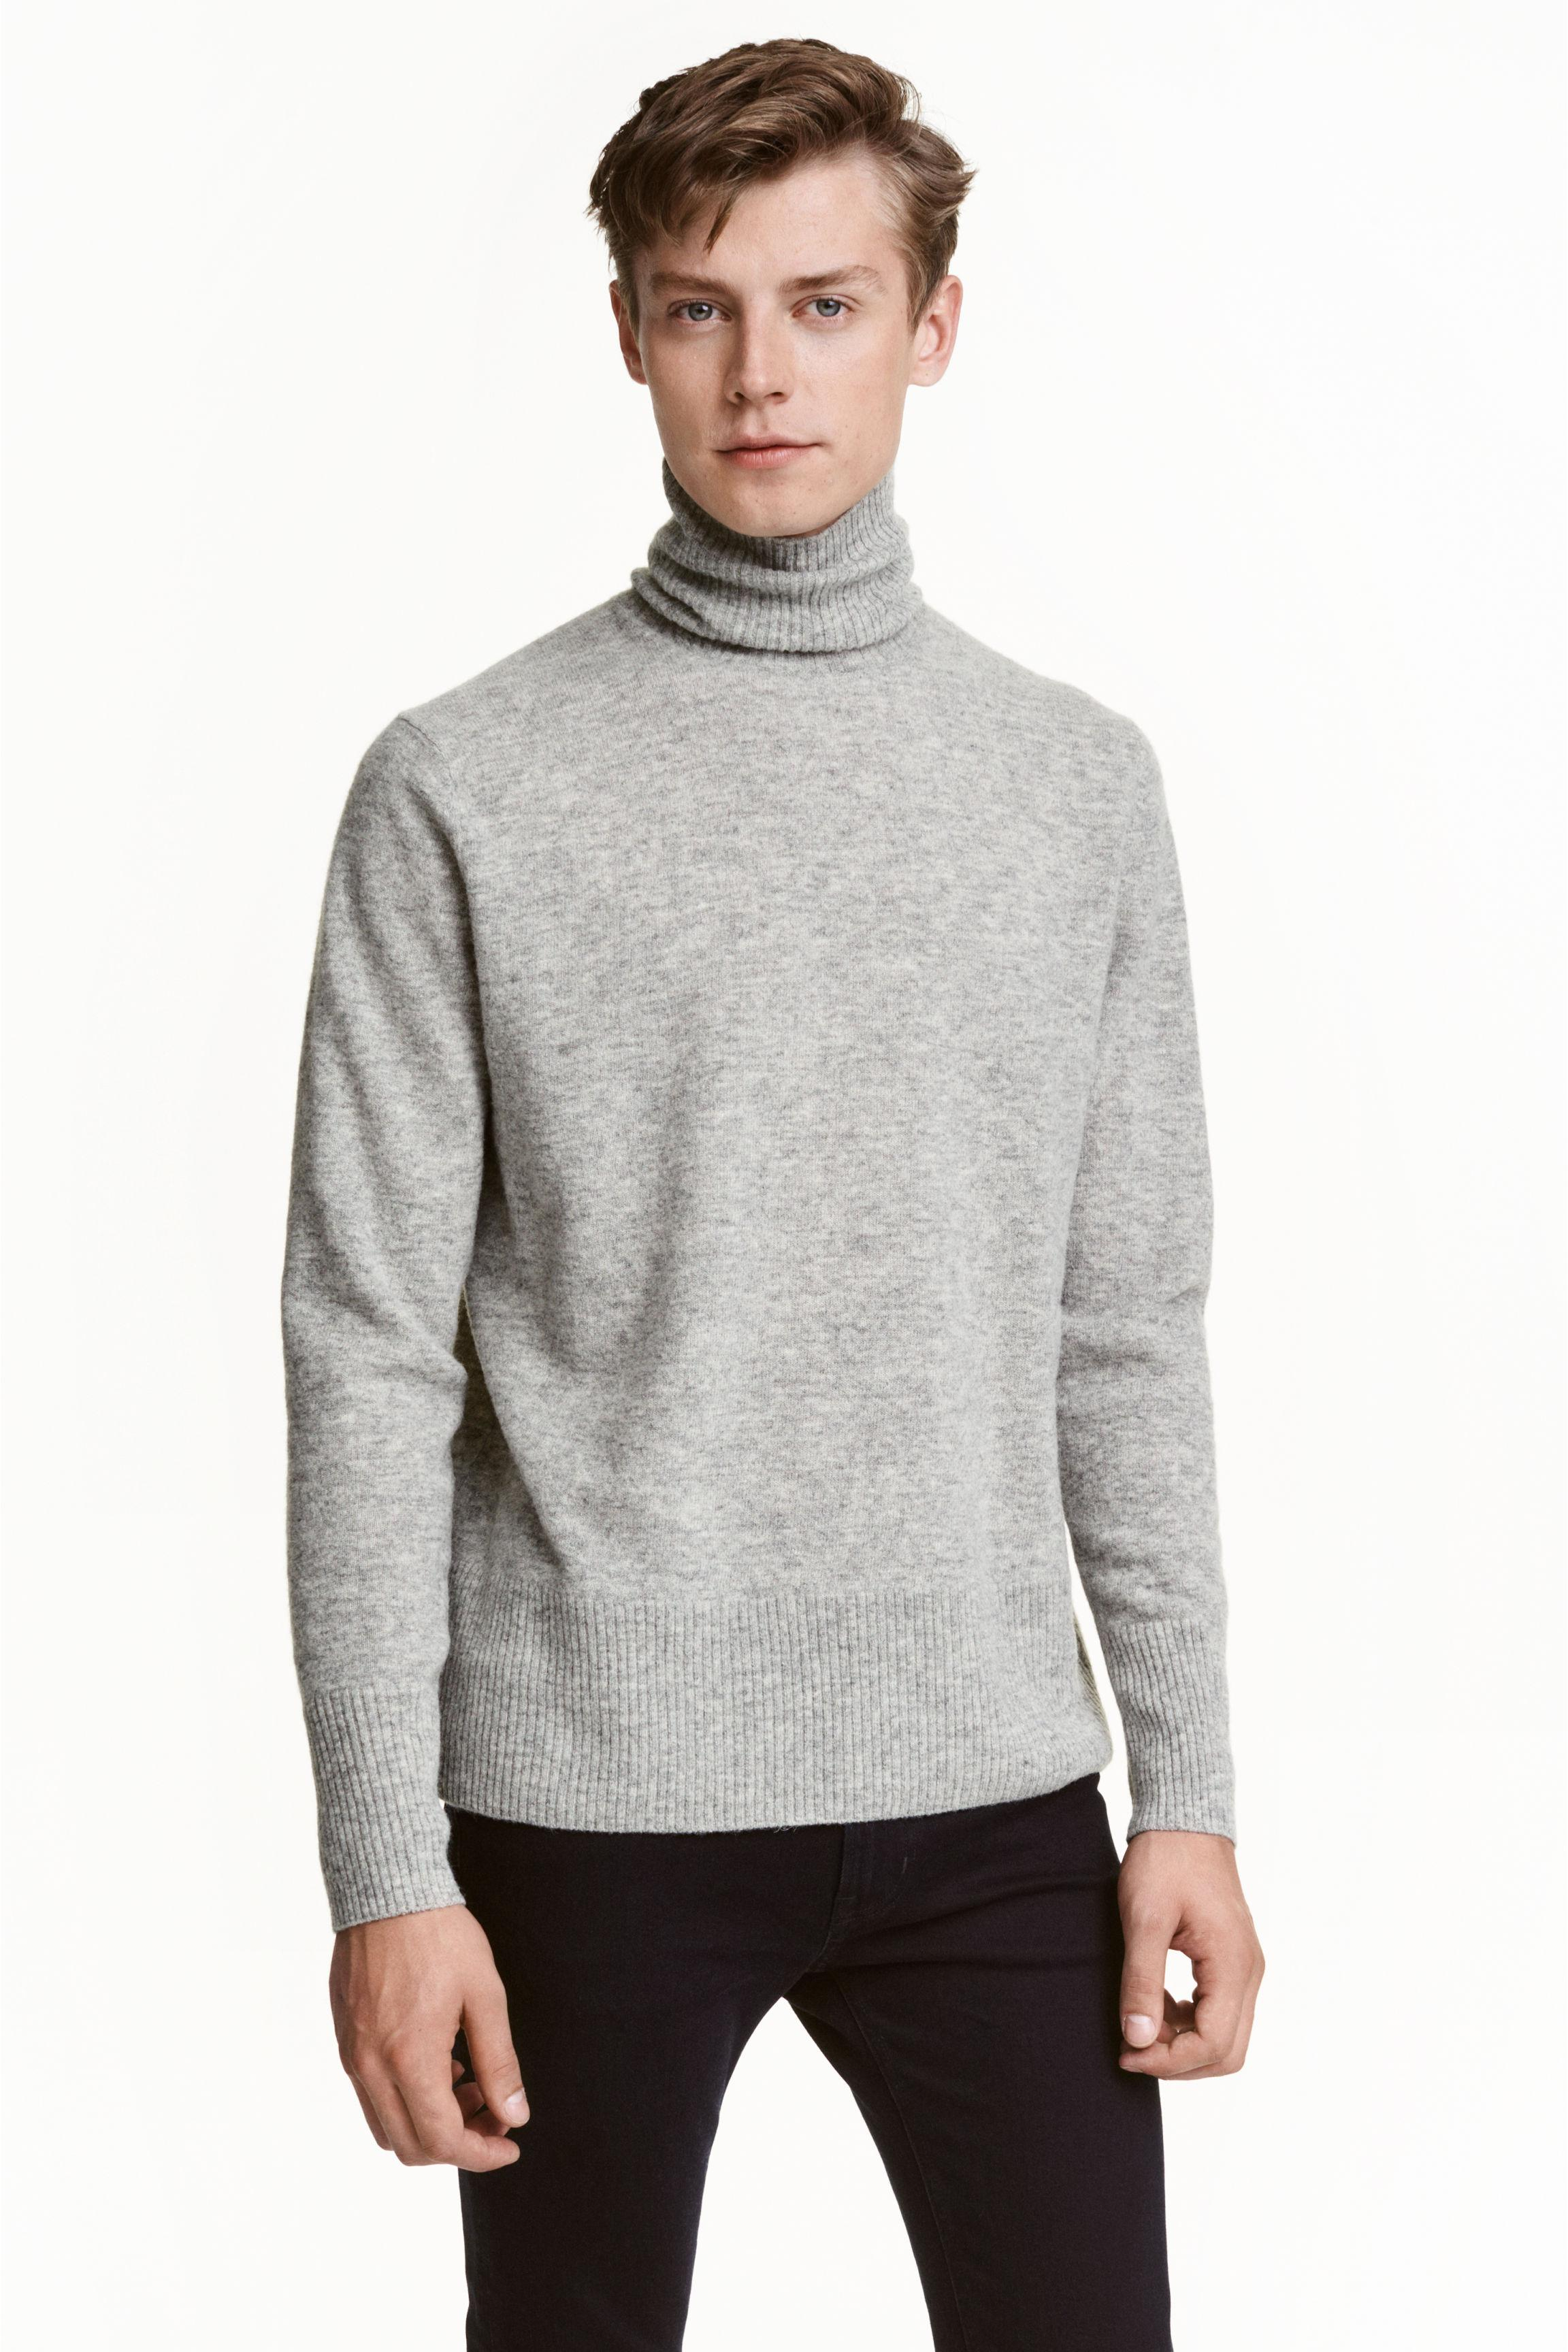 Hm Amberg H Andm Fine Knit Polo Neck Jumper In Gray For Men Lyst